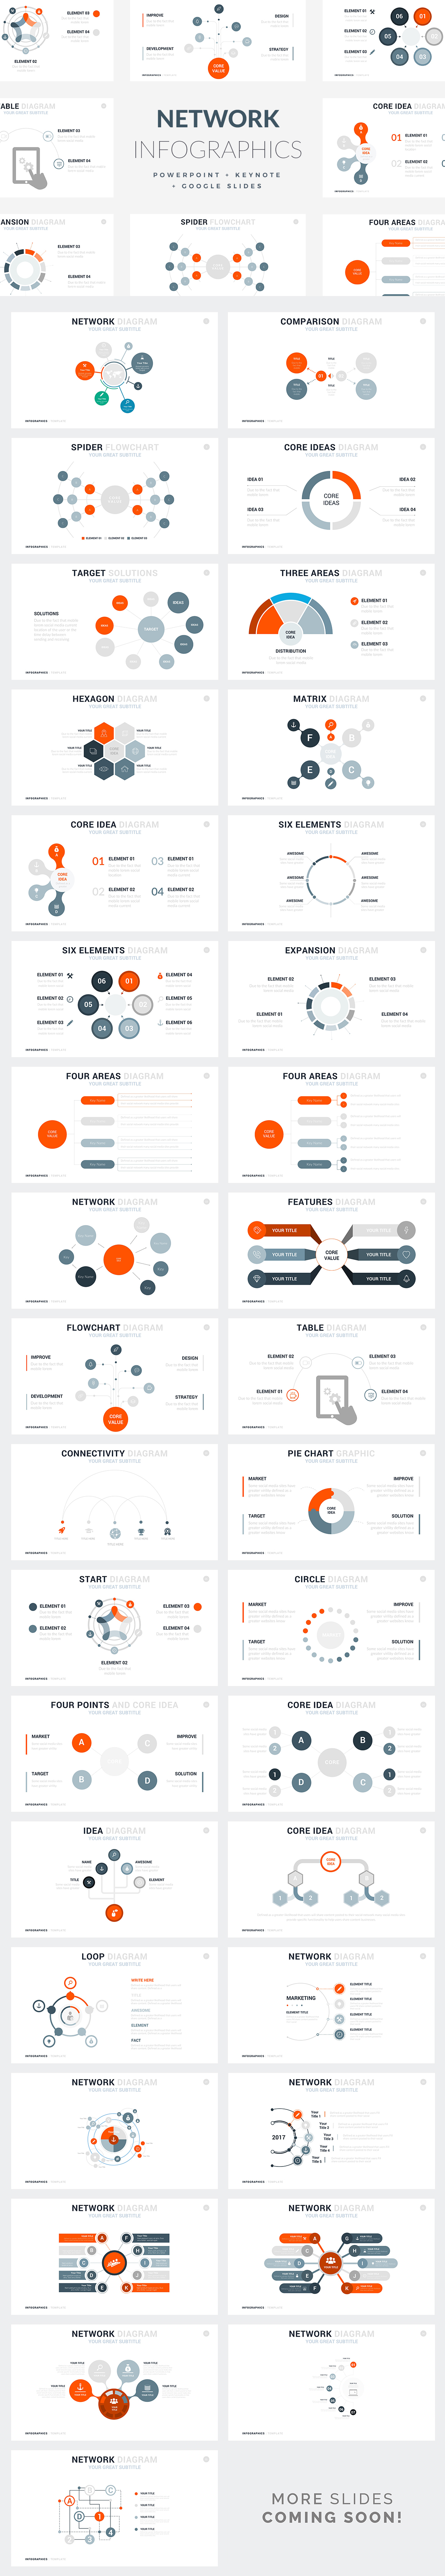 Network Infographics Templates - PowerPoint Templates - Keynote Themes - Google Slides.psd